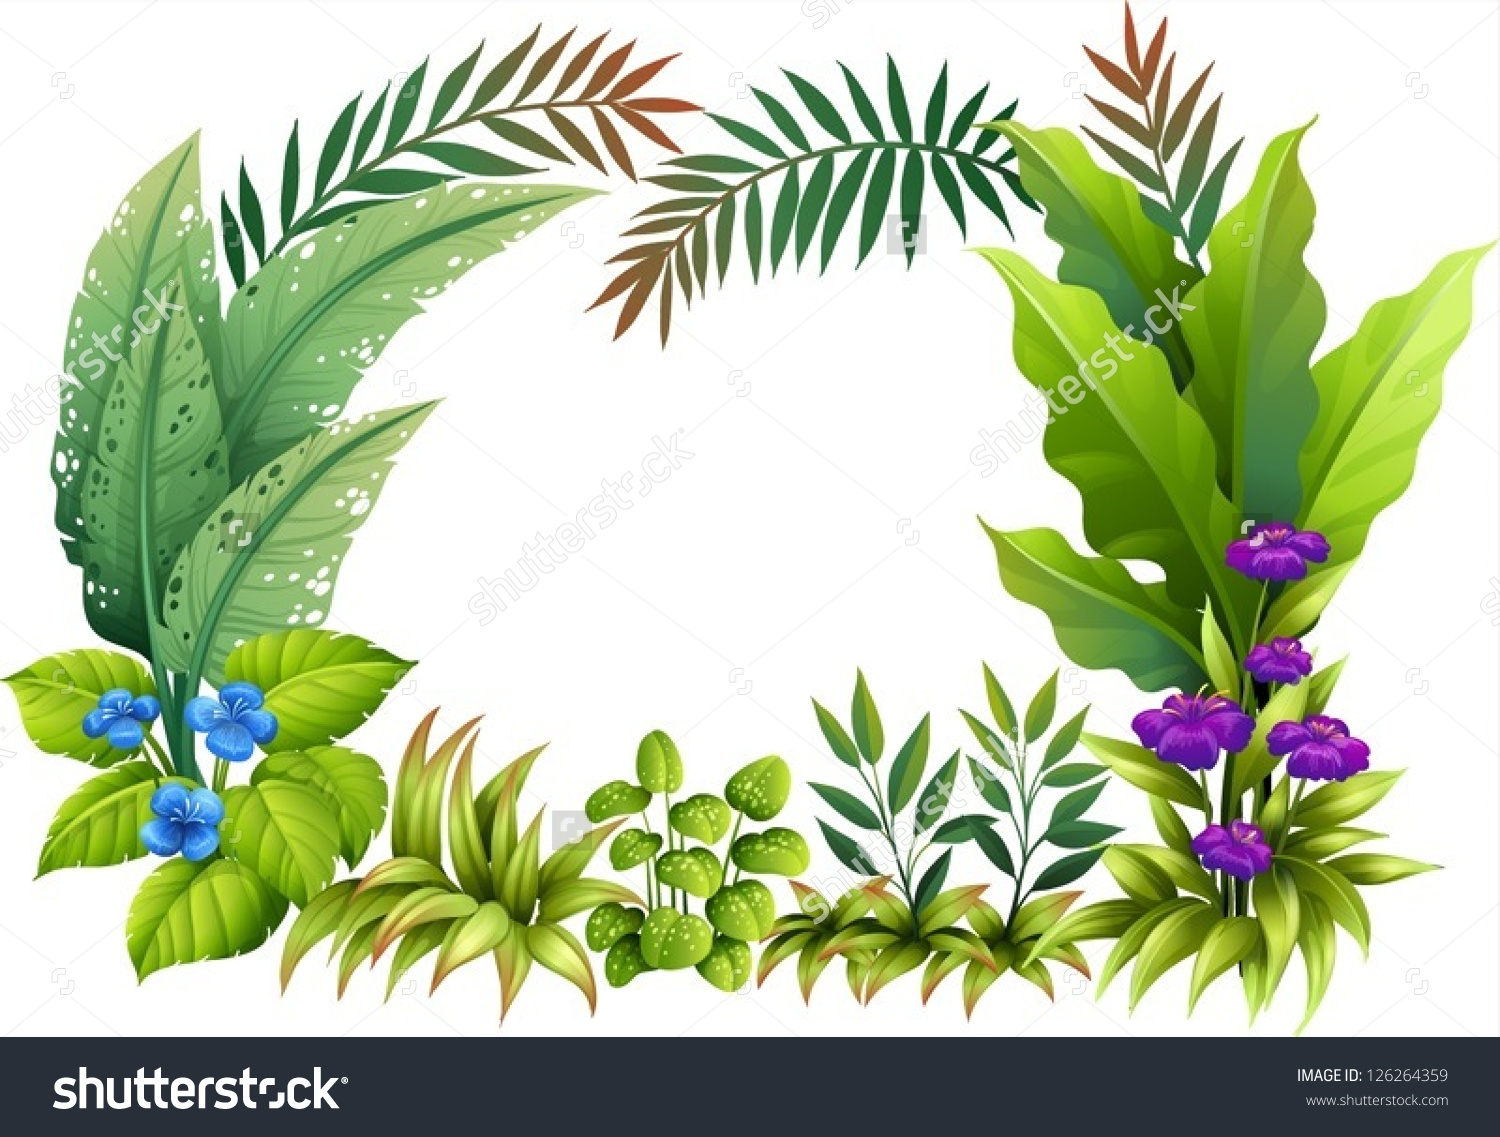 Tropical plants clipart.